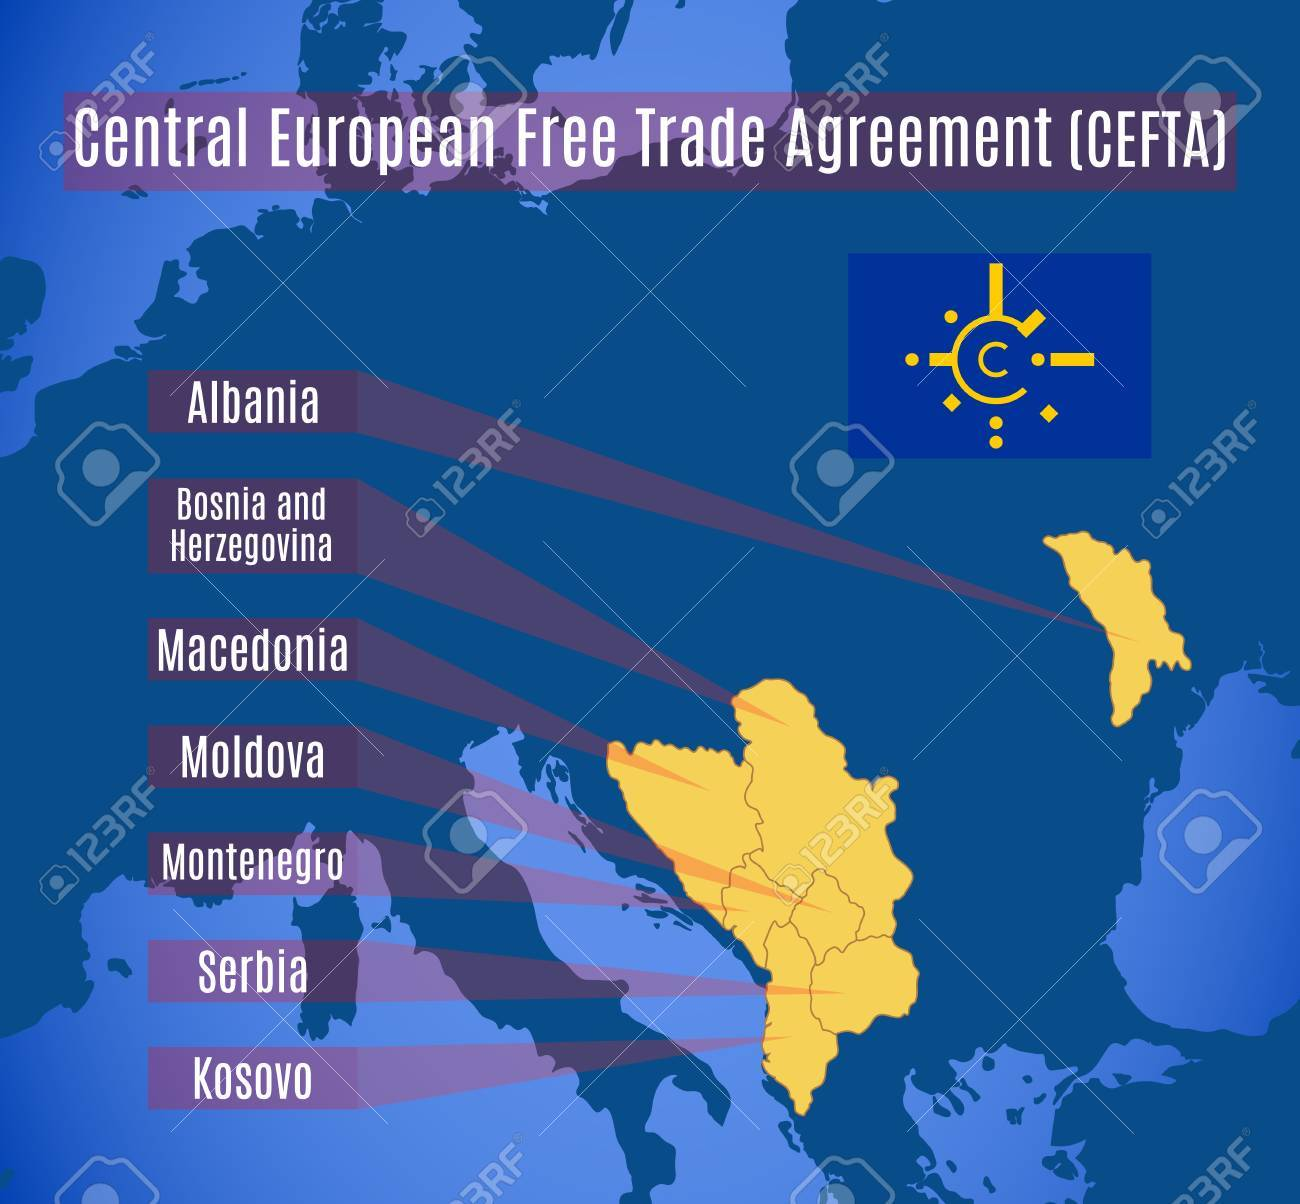 Schematic Map Of The Central European Free Trade Agreement (CEFTA ...